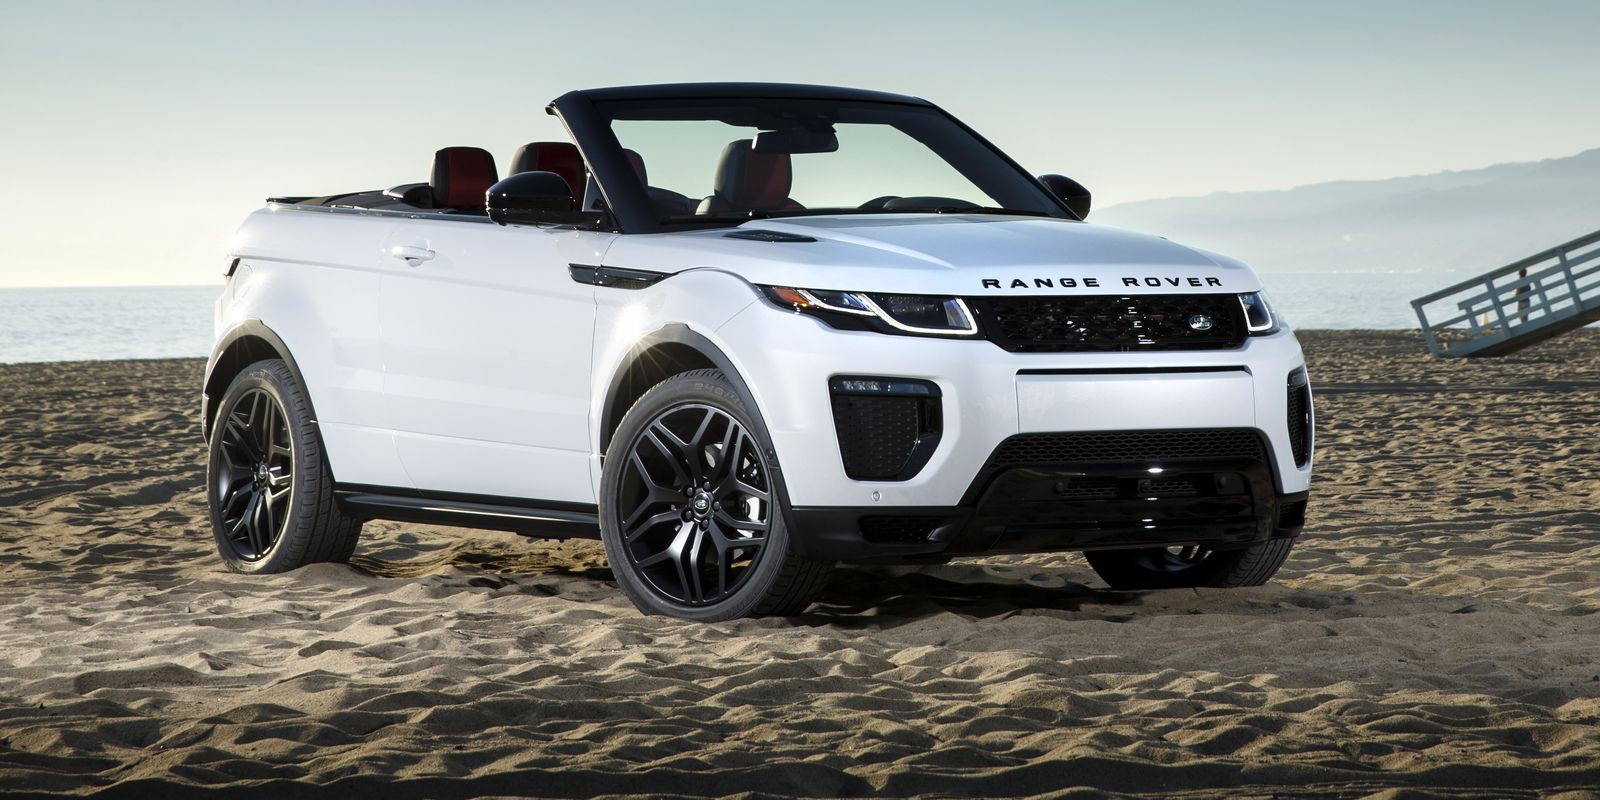 land rover range rover evoque convertible review deals. Black Bedroom Furniture Sets. Home Design Ideas